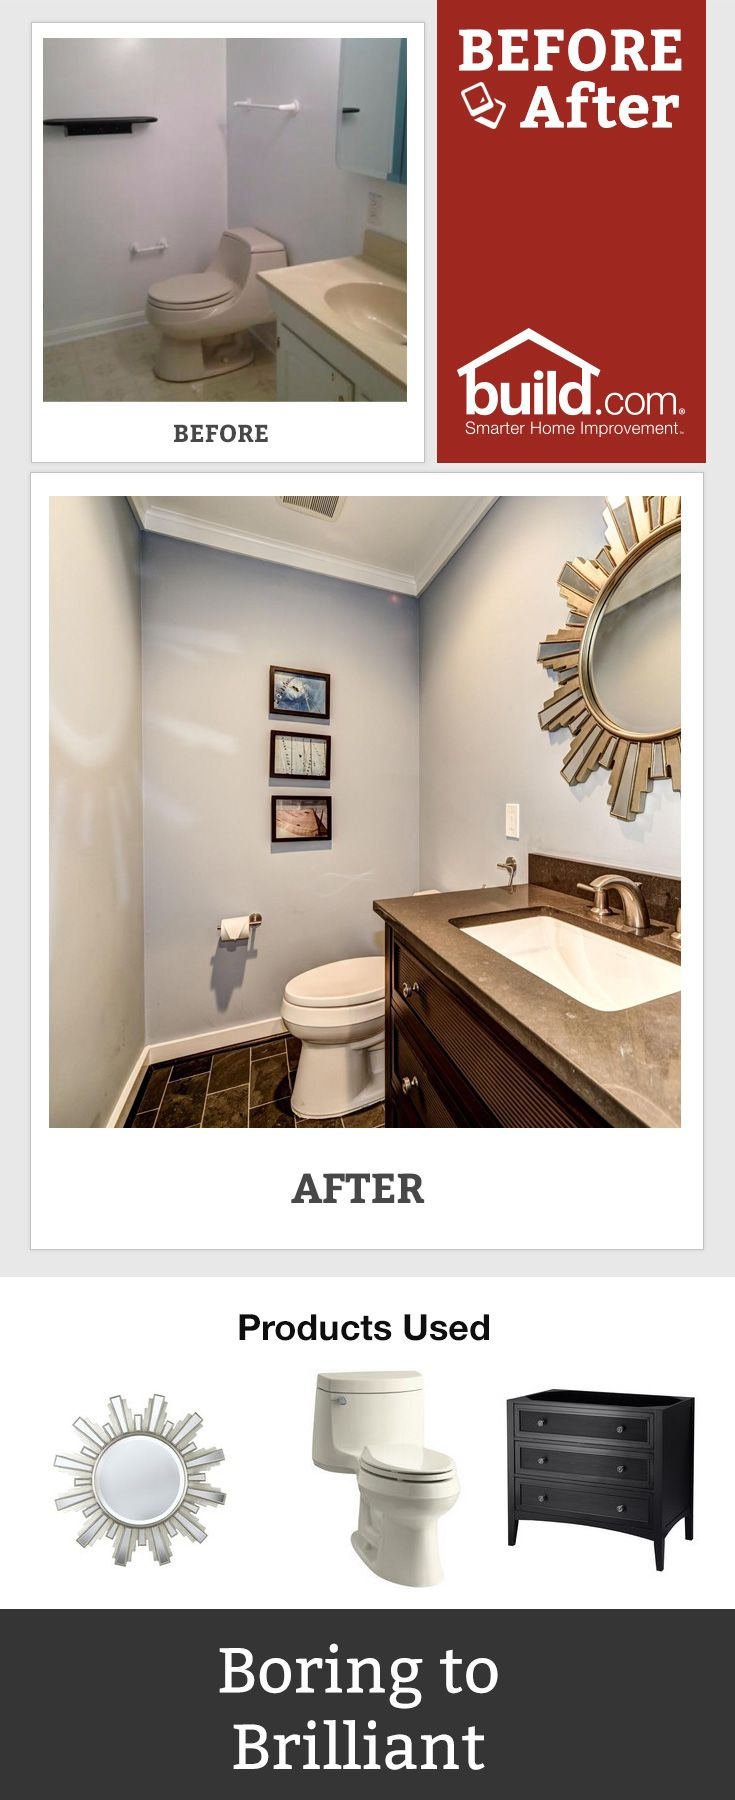 Transform your bathroom with big and small bathroom remodeling ideas, and get the inspiration you need to find the right products. What is your favorite part about this bathroom remodel?